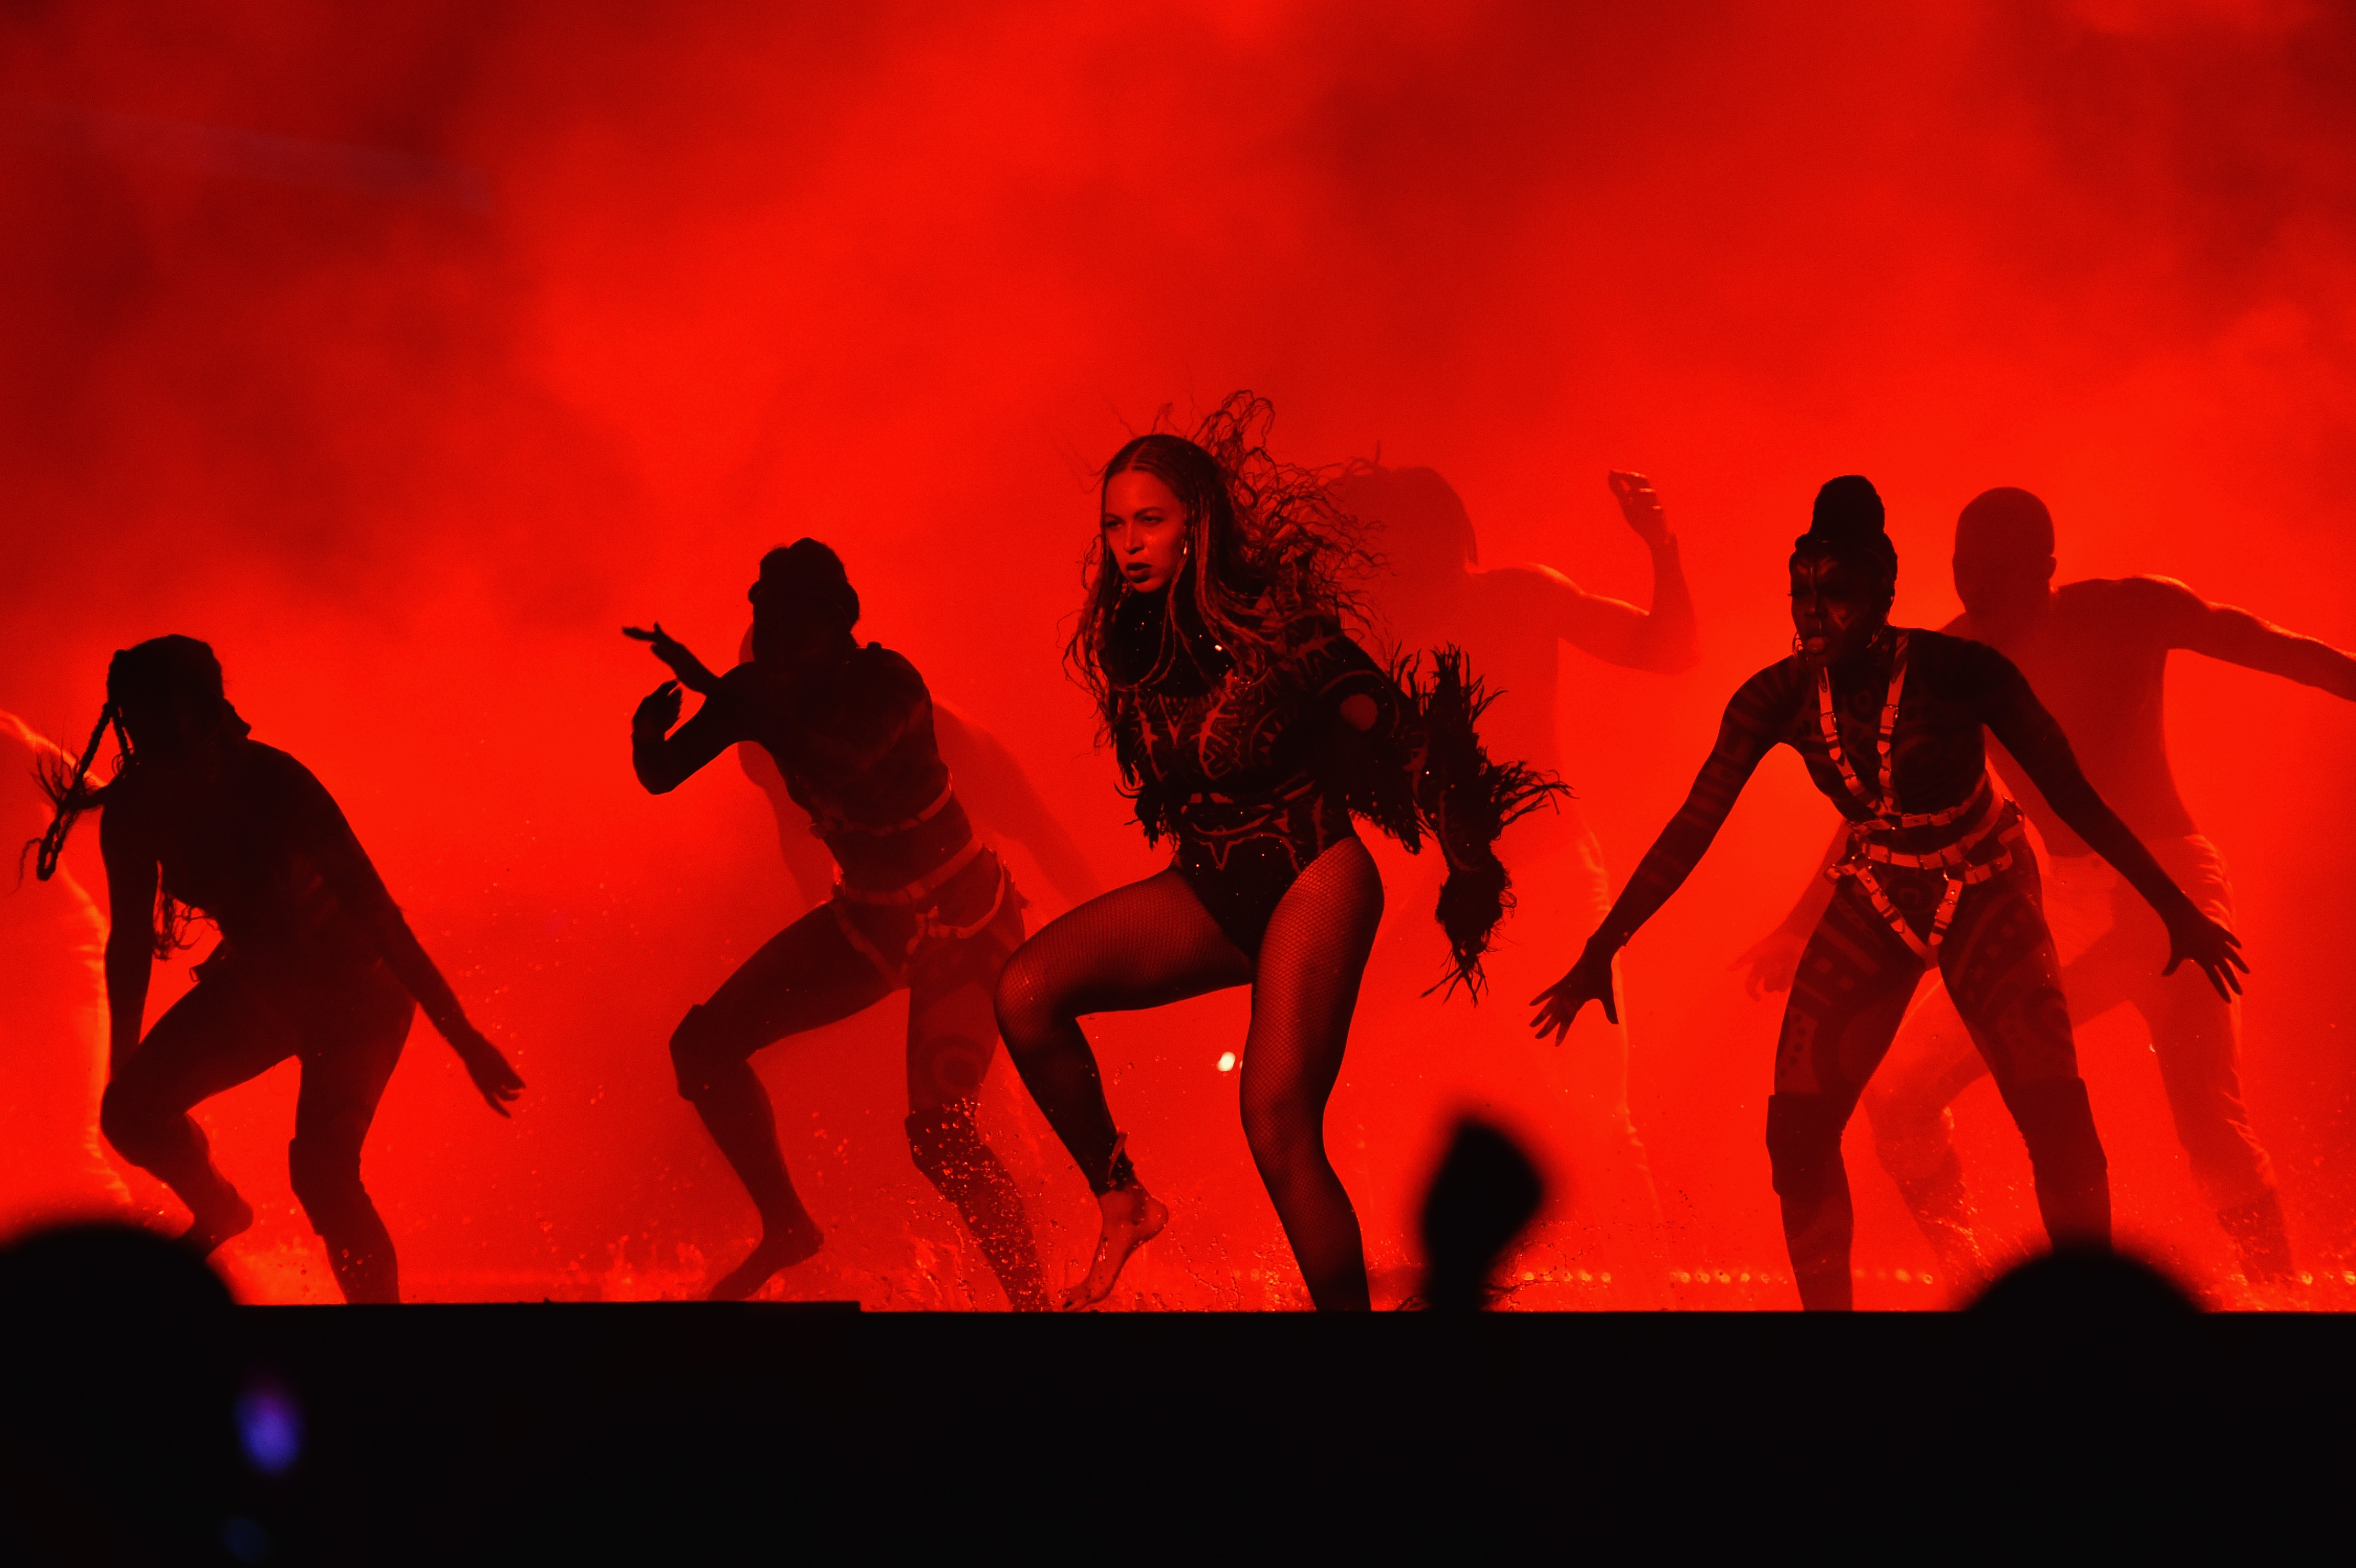 LOS ANGELES, CA - JUNE 26:  Recording artist Beyonce performs onstage during the 2016 BET Awards at the Microsoft Theater on June 26, 2016 in Los Angeles, California.  (Photo by Paras Griffin/BET/Getty Images for BET)